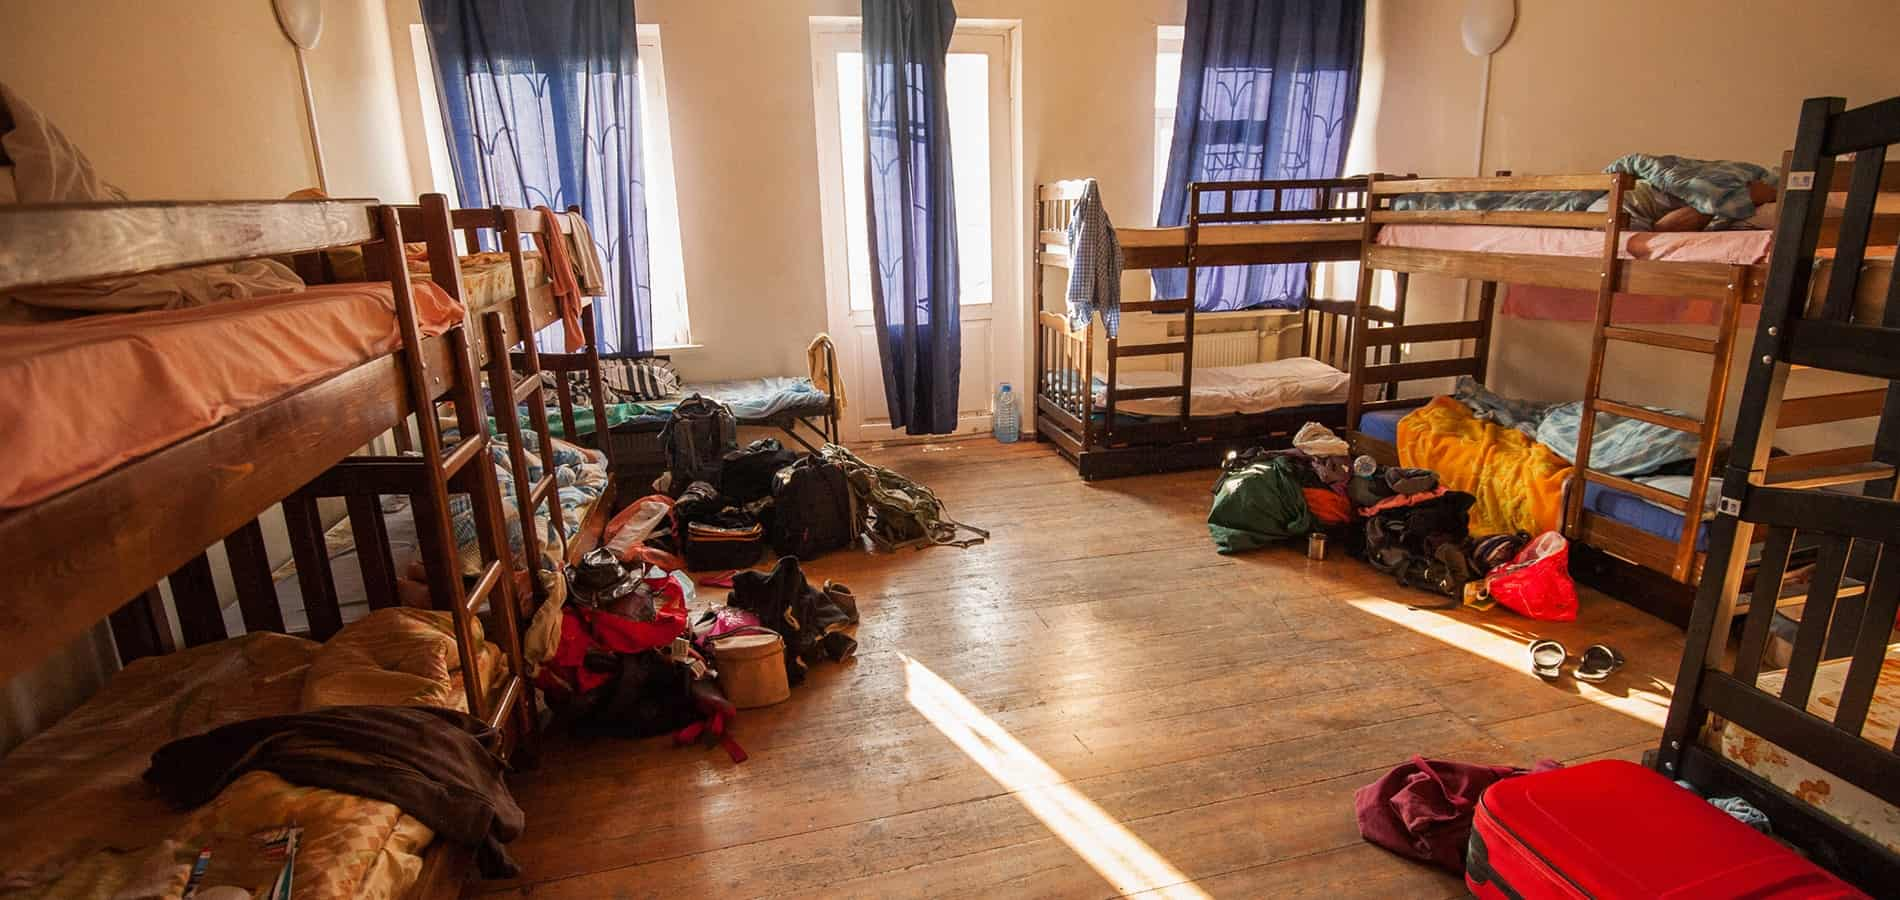 Travel with little money and stay in dorms